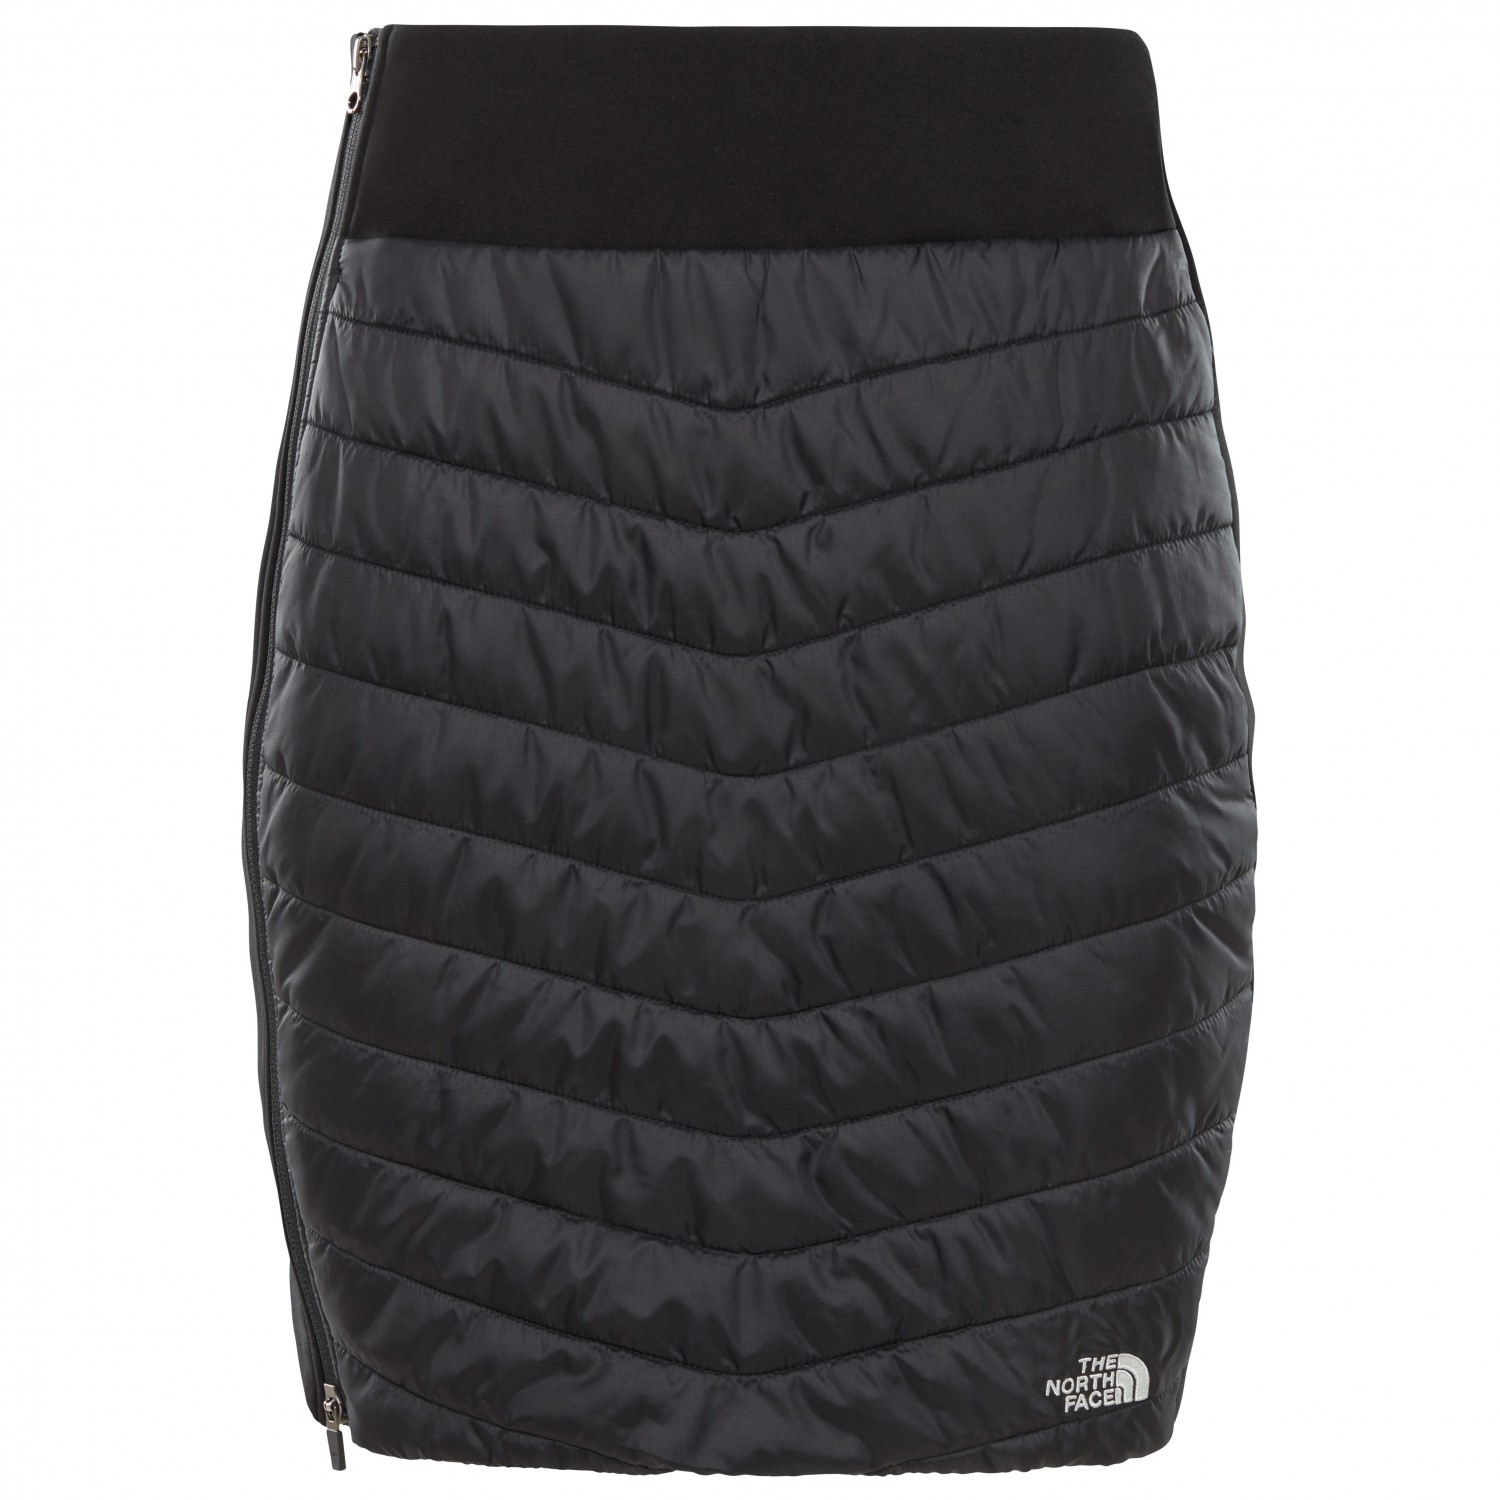 eab8a6a6b The North Face - Women's Inlux Insulated Skirt - Synthetic skirt